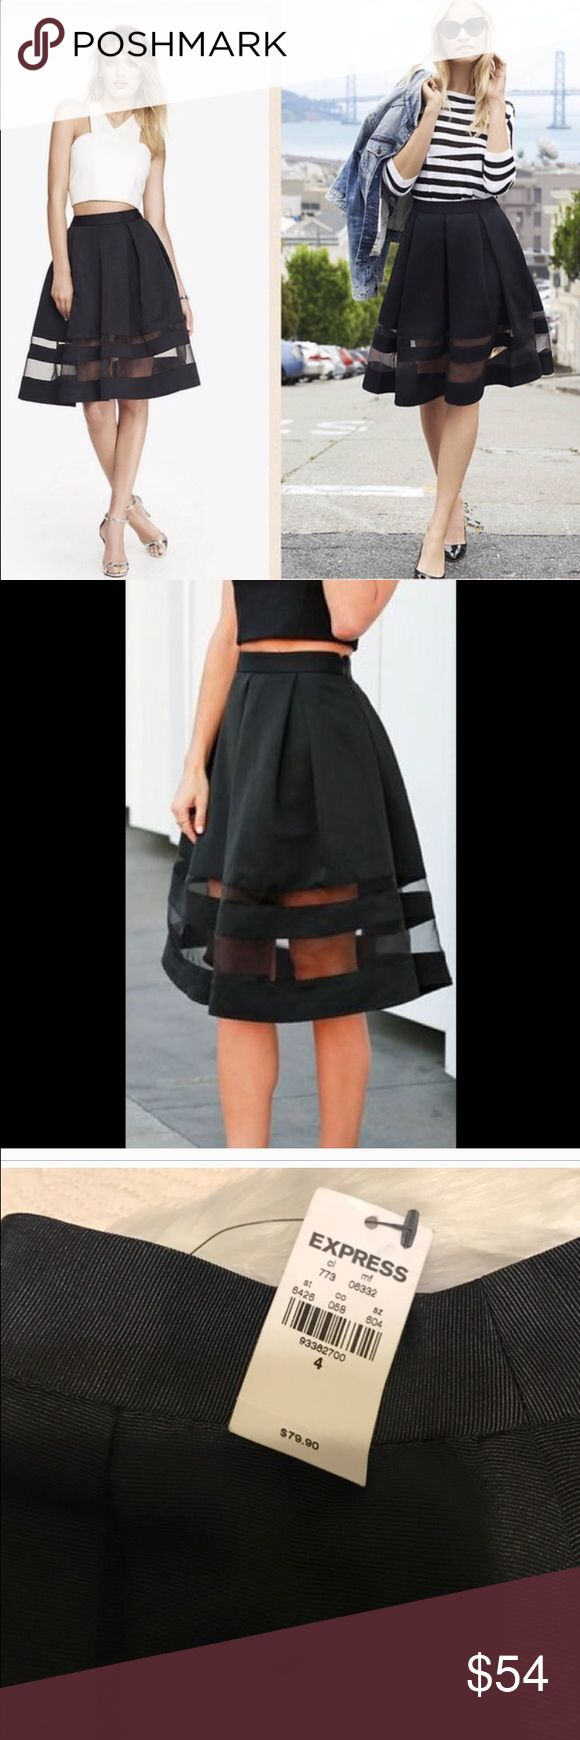 New with Tags Express skirt, sz 4 New with Tags Express black midi skirt. Just purchased through Poshmark for my 30th birthday dinner outfit, but it isn't quite the jaw dropping affect I'm looking for! Mint condition, brand new with Tags. I purchased for $47, looking to recover the $47 and the $6.95 I spent in shipping. Express Skirts Midi